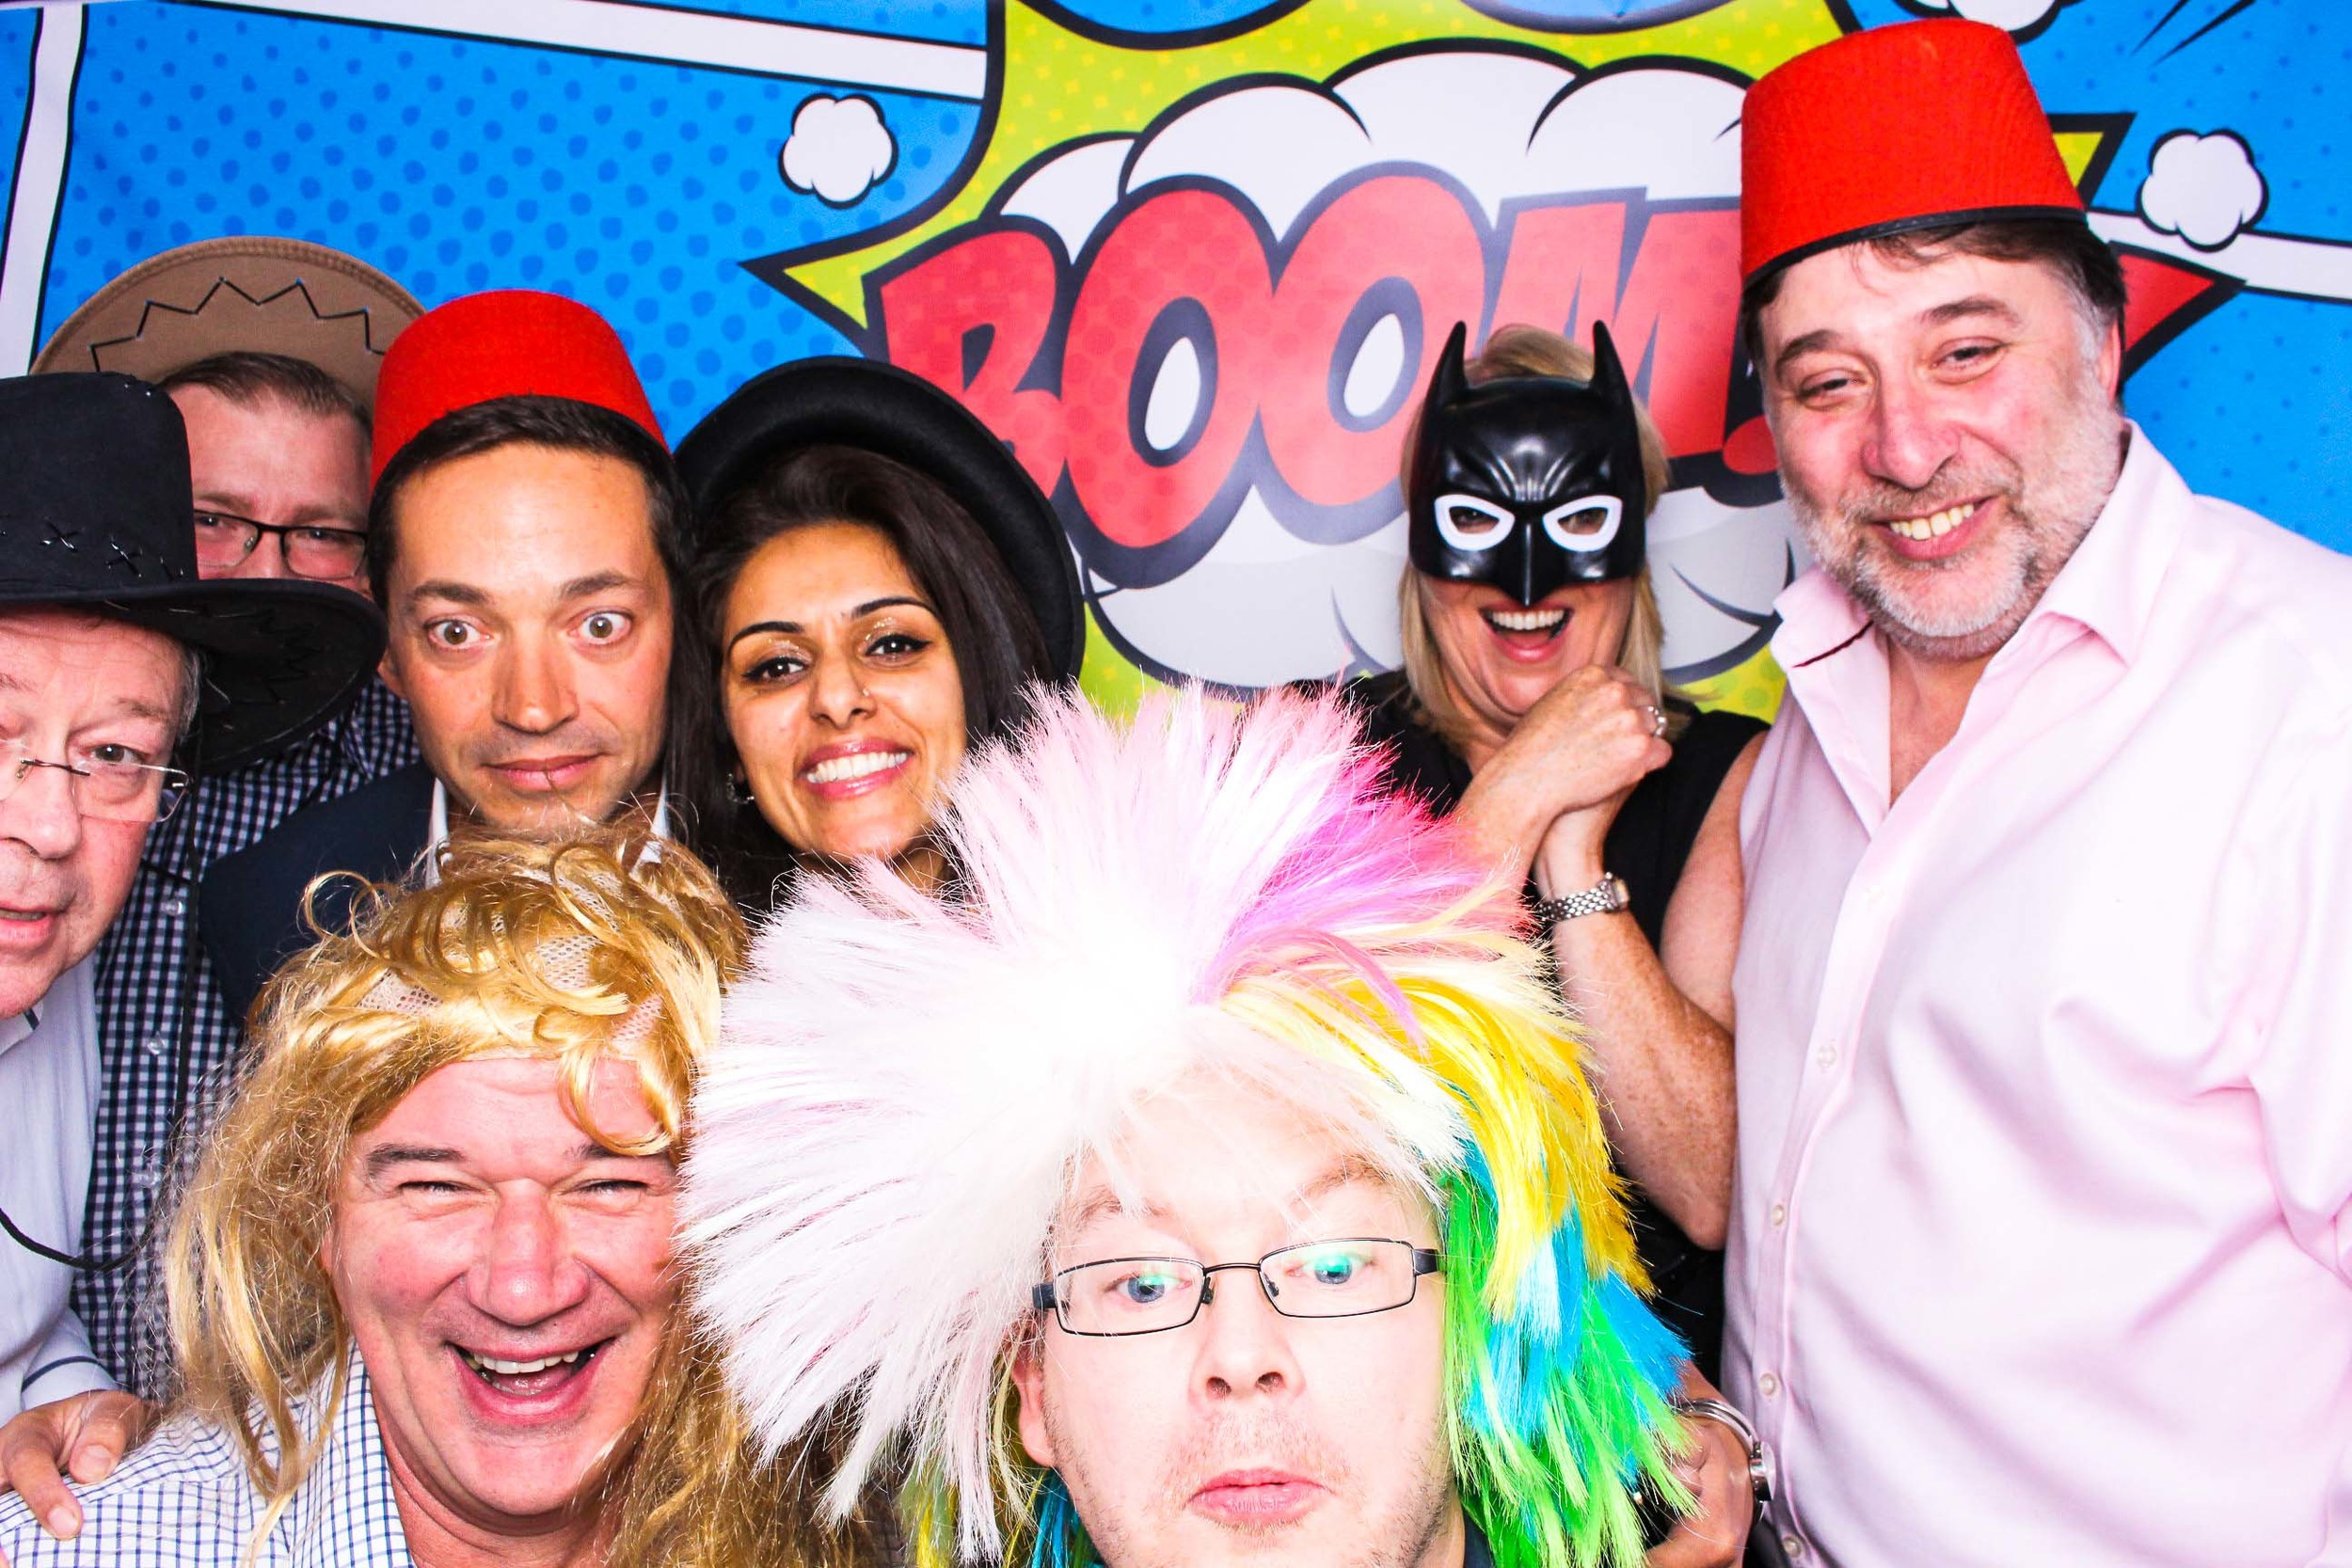 Fotoauto Photo Booth Hire - Shop Direct-223.jpg